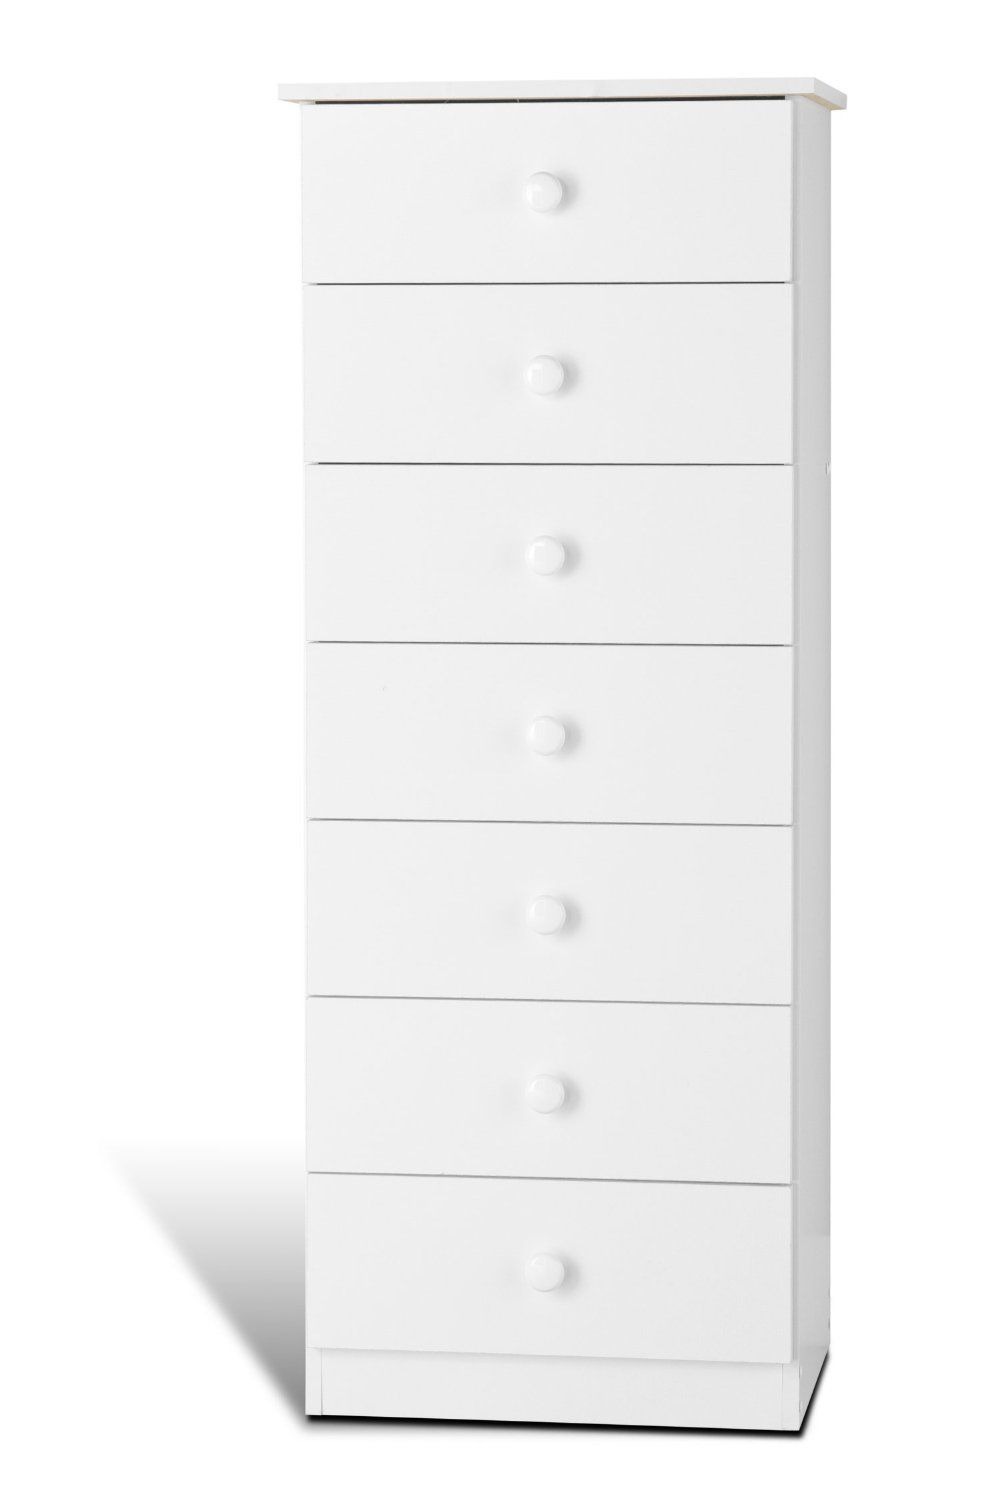 Closet Organizing Tips To Incorporate From These Dream Closets Closet Hacks Organizing Simple Closet Tall White Dresser